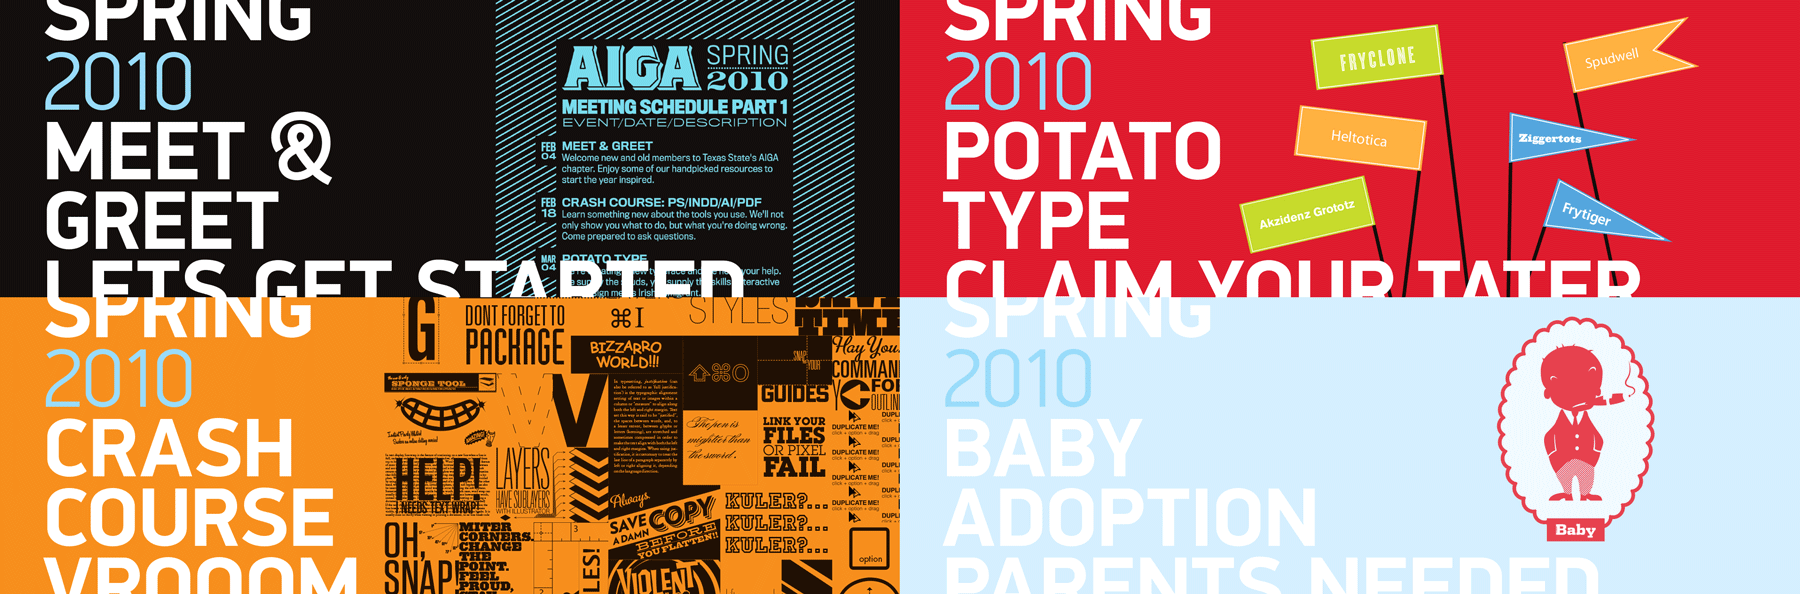 aiga-sections